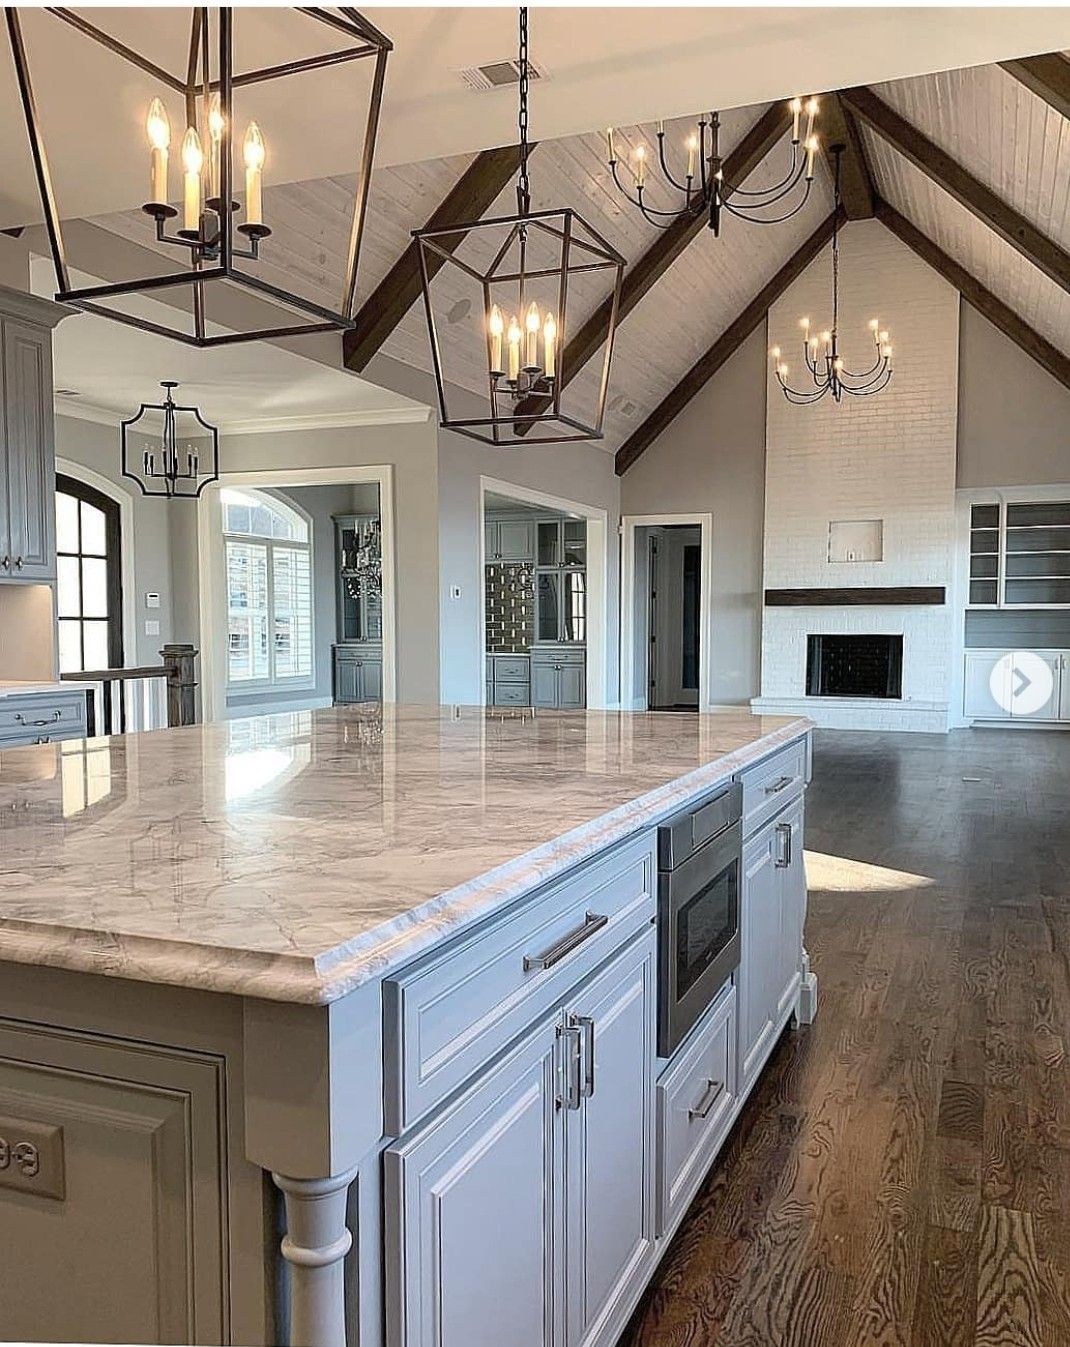 Pin By Bickimer Homes On Model Homes: Pin By Kayla Tromatore On H O M E. In 2019